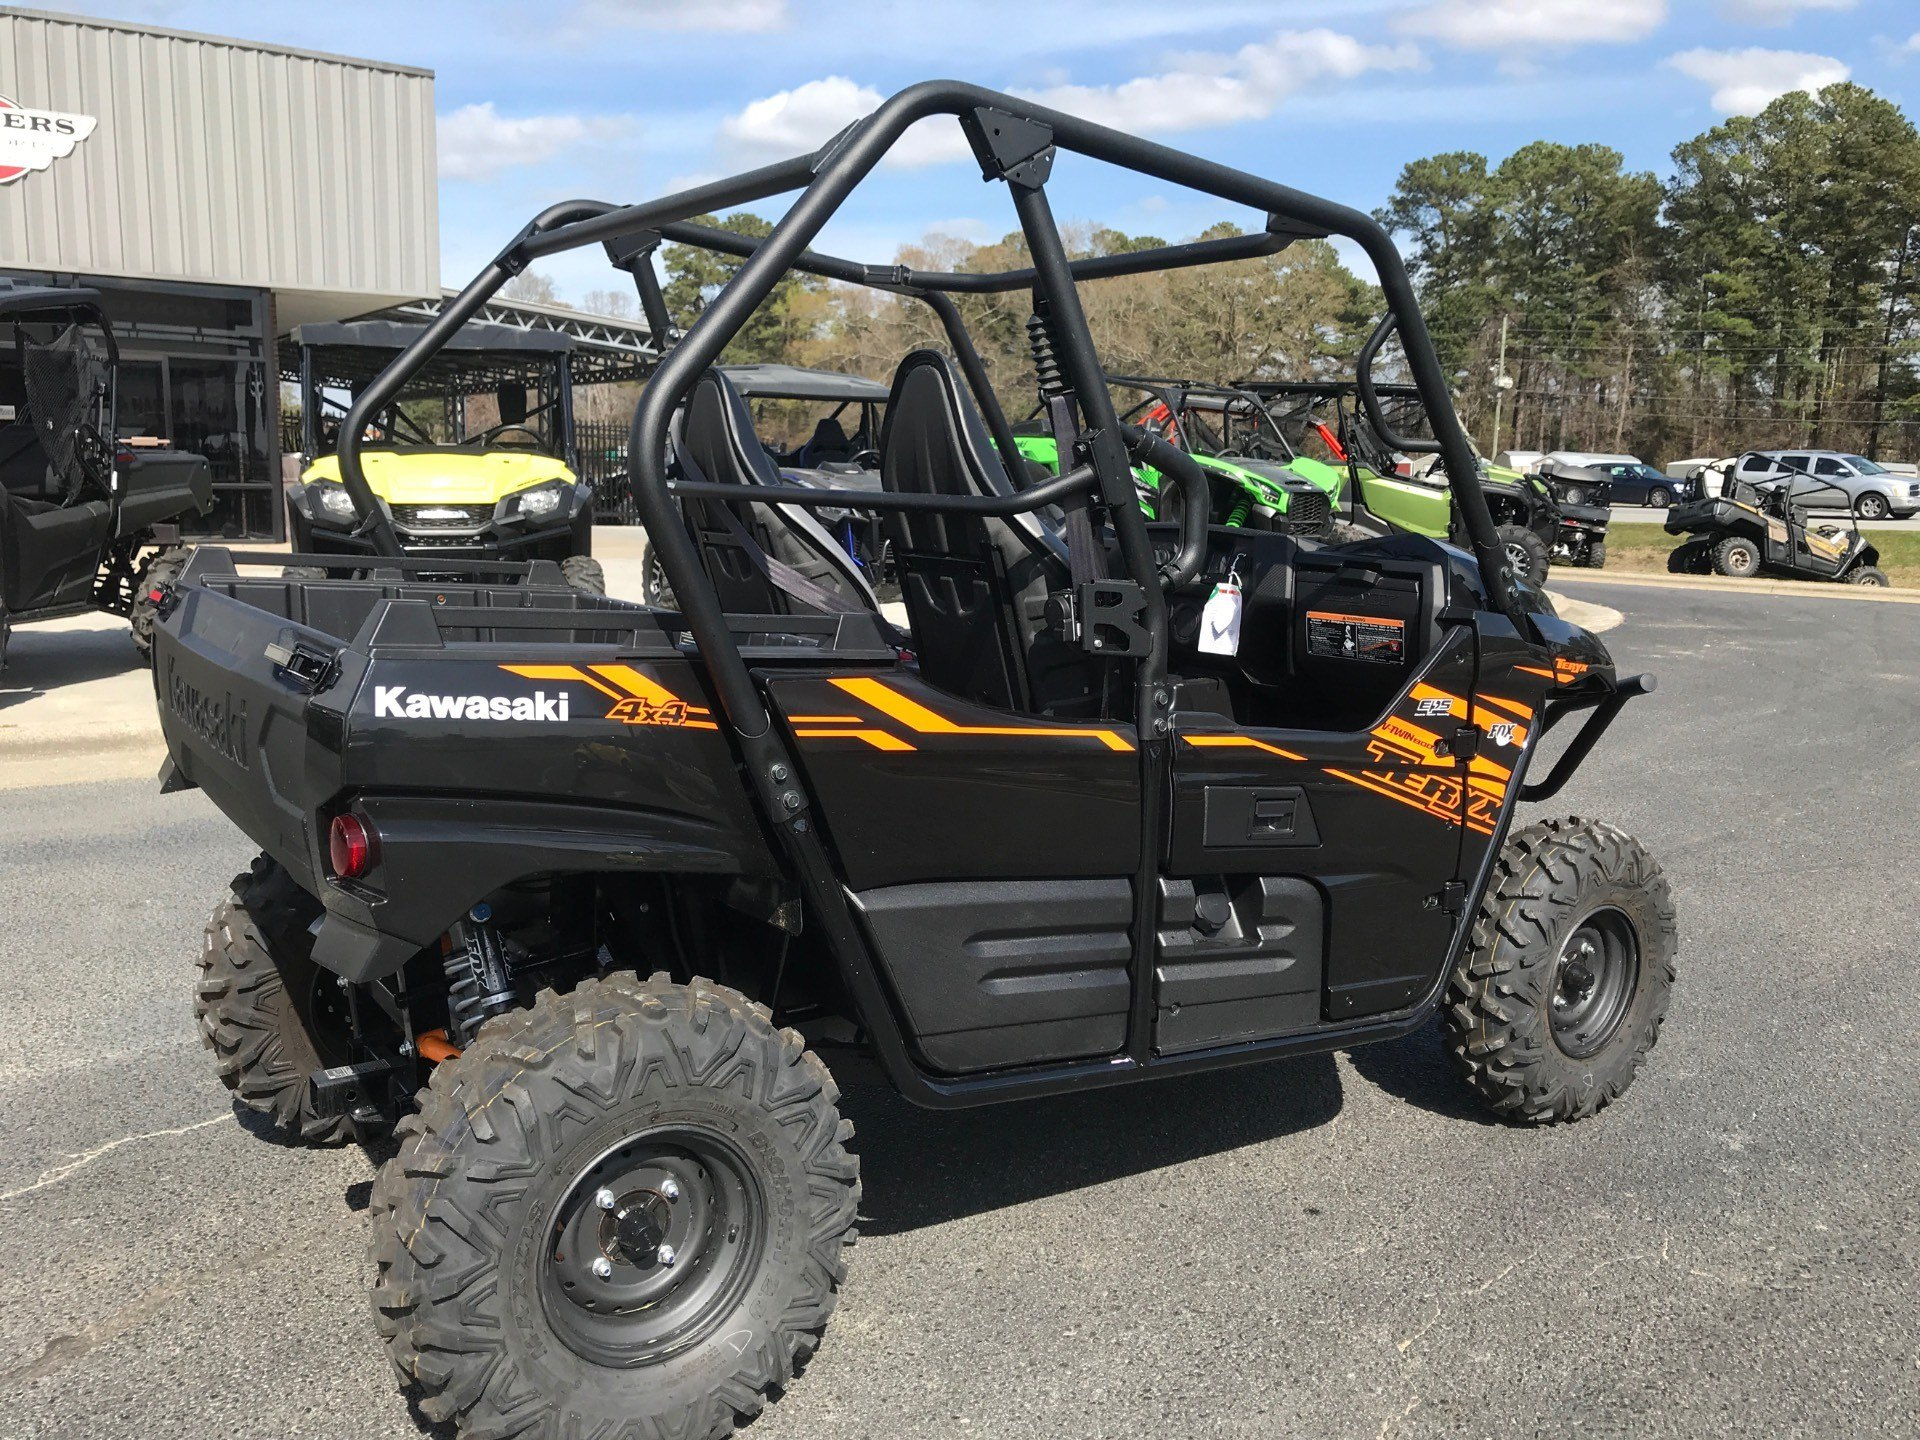 2020 Kawasaki Teryx in Greenville, North Carolina - Photo 12